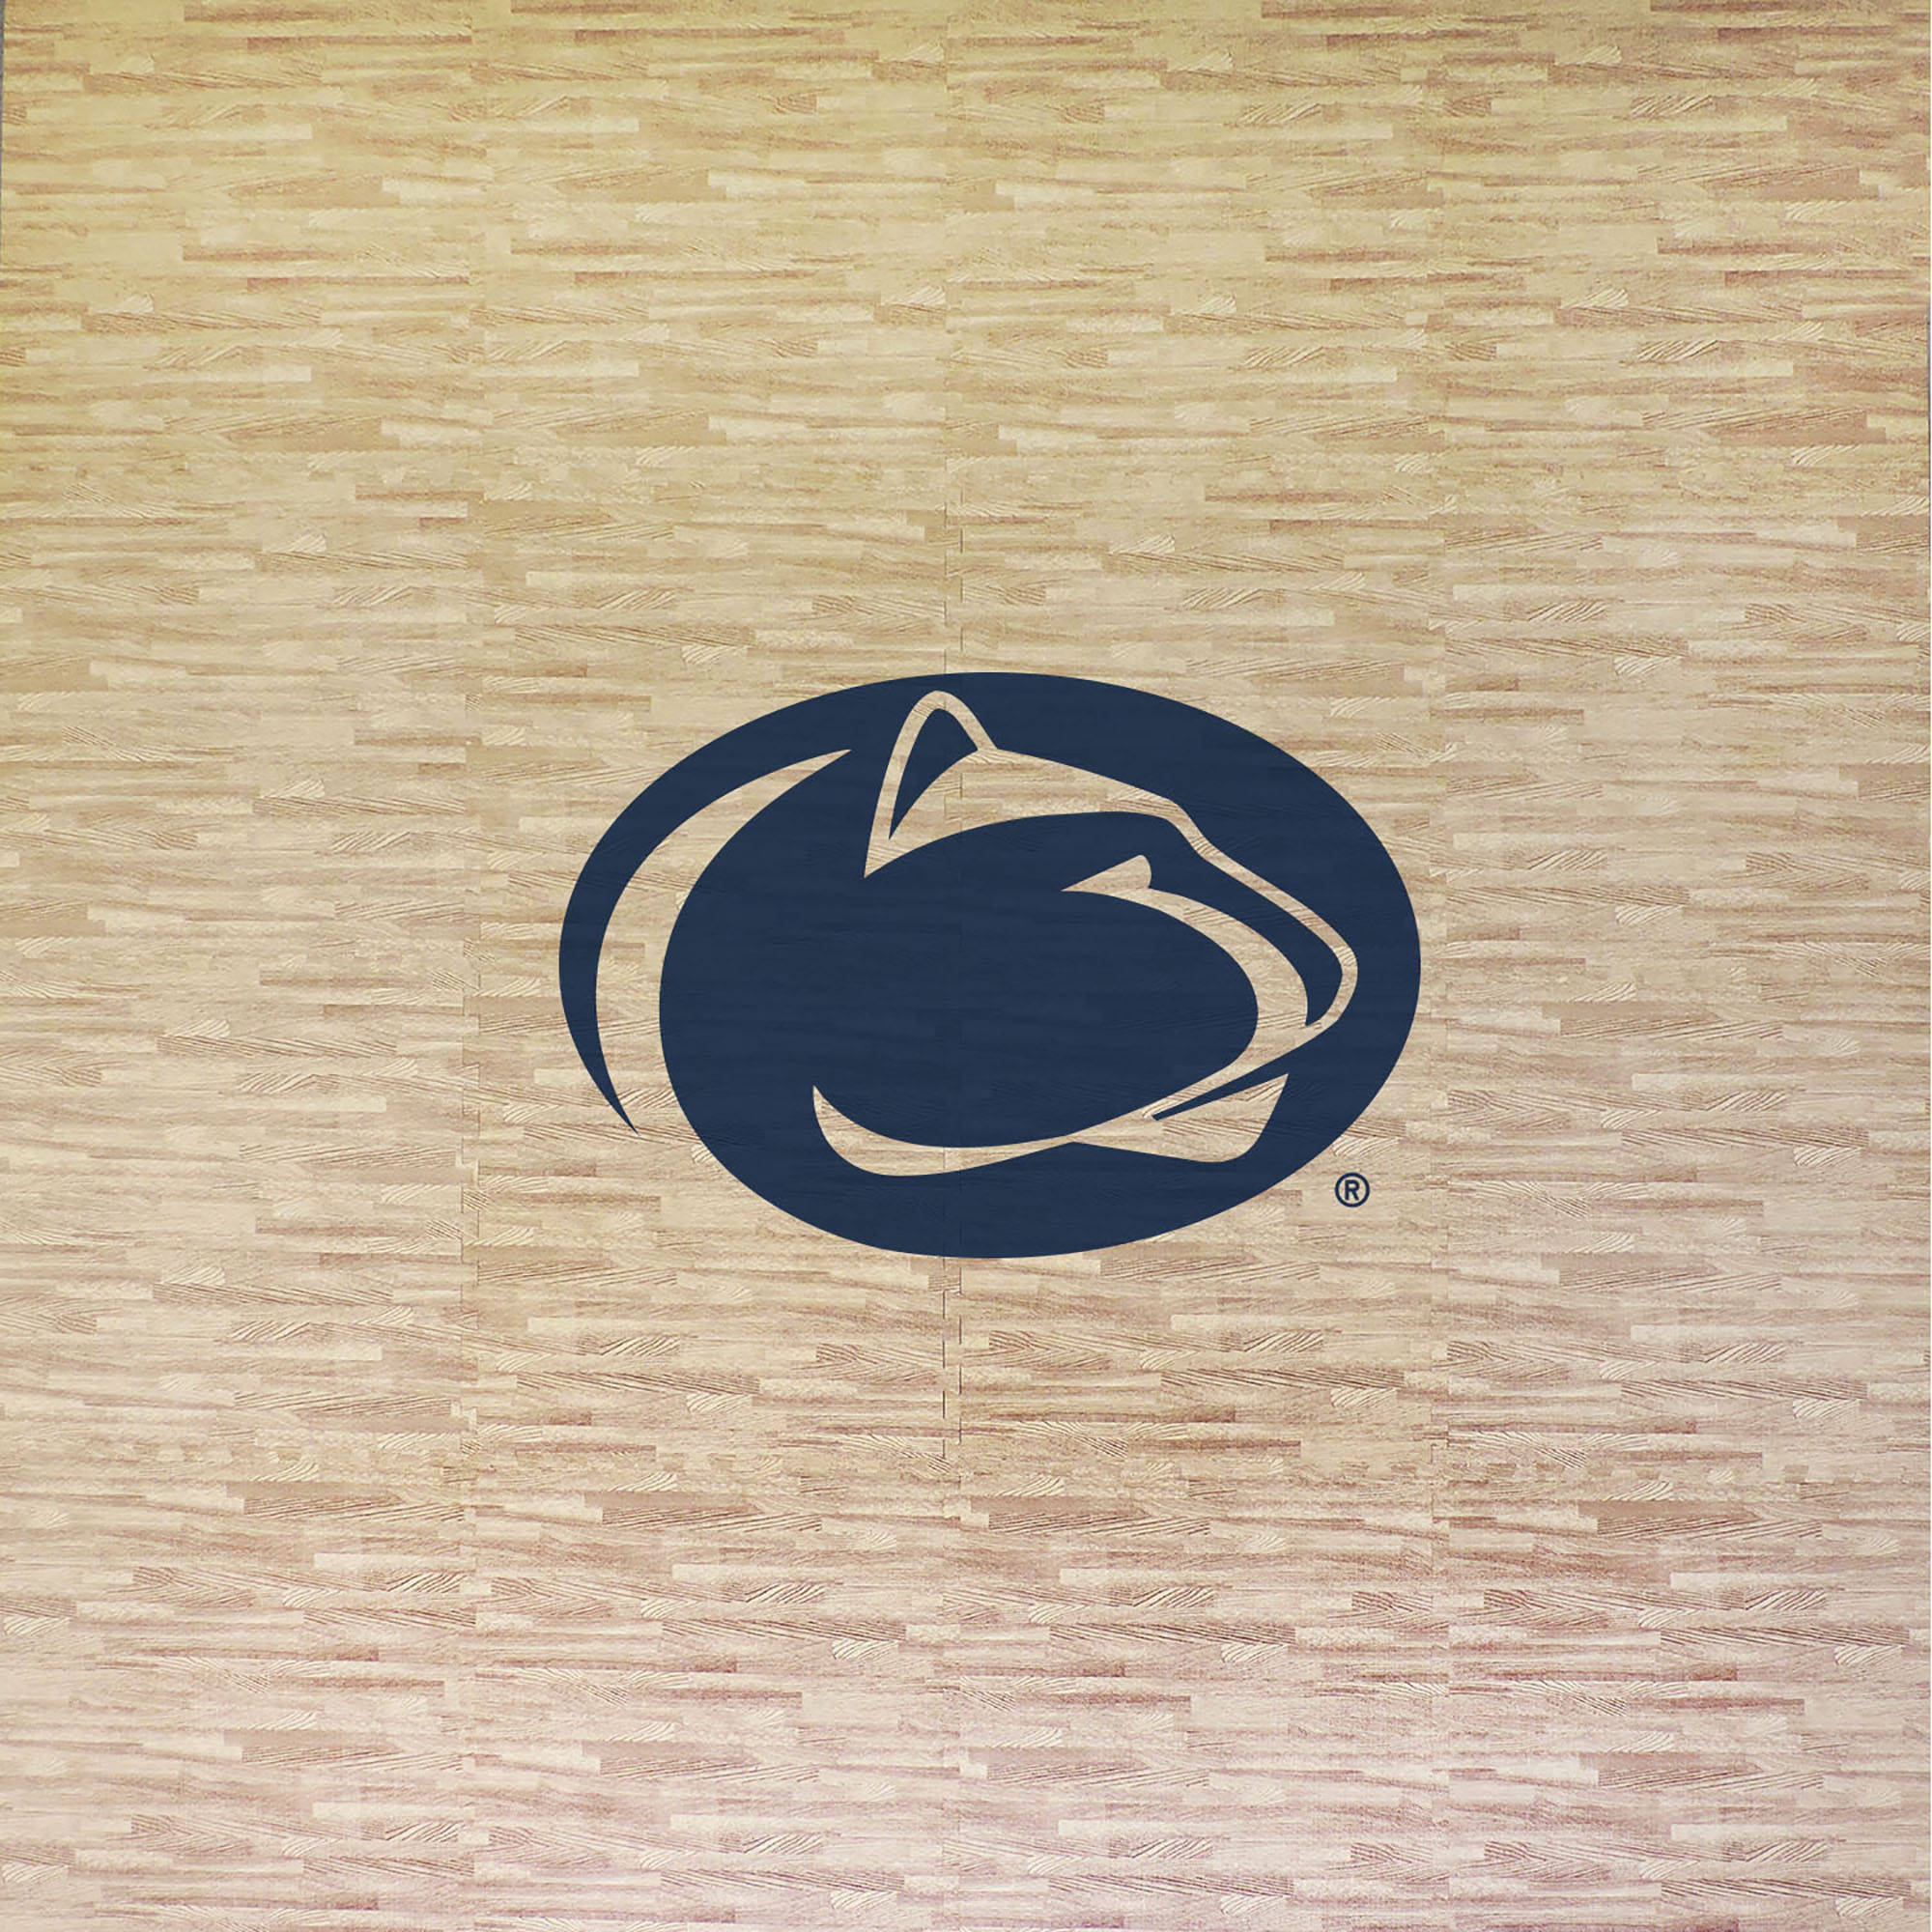 Penn State University Portable Foam Puzzle Tailgate Floor Mat by Coopersburg Sports